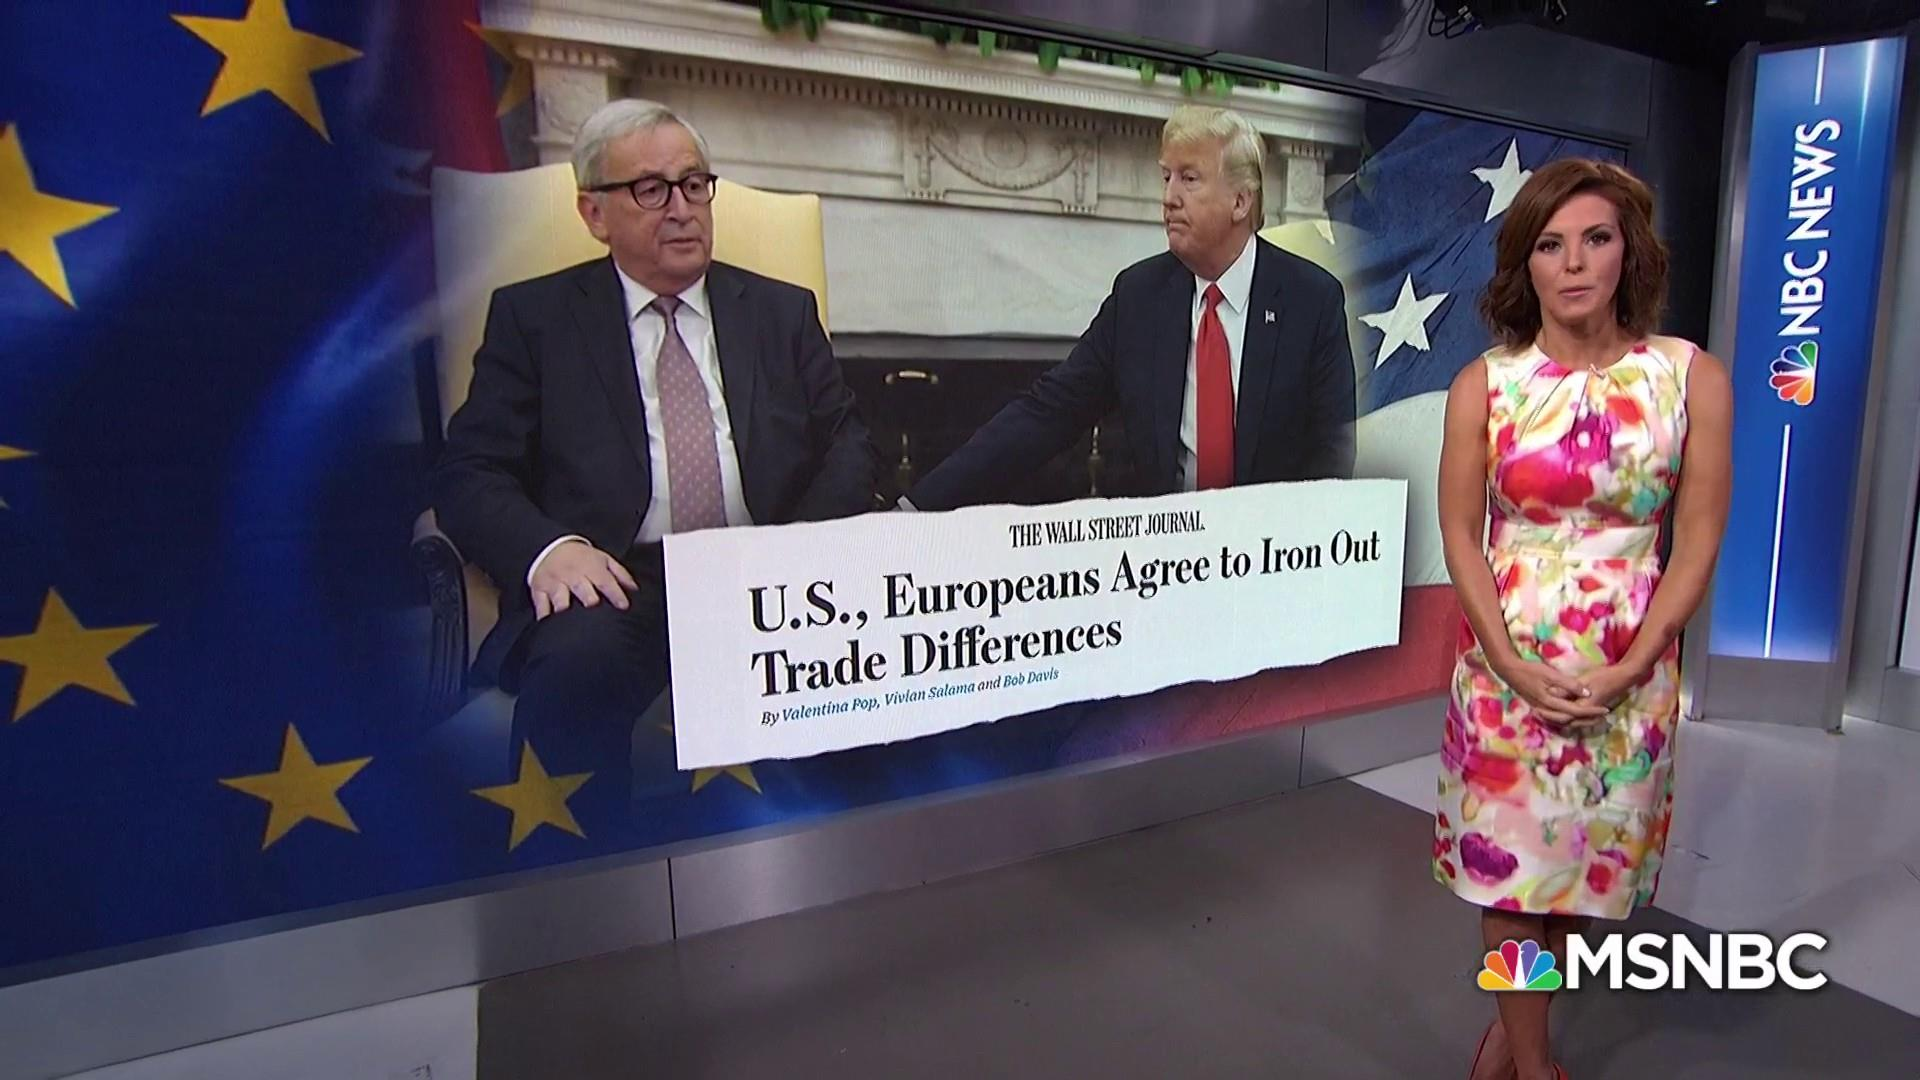 President Trump kisses and makes up with head of EU